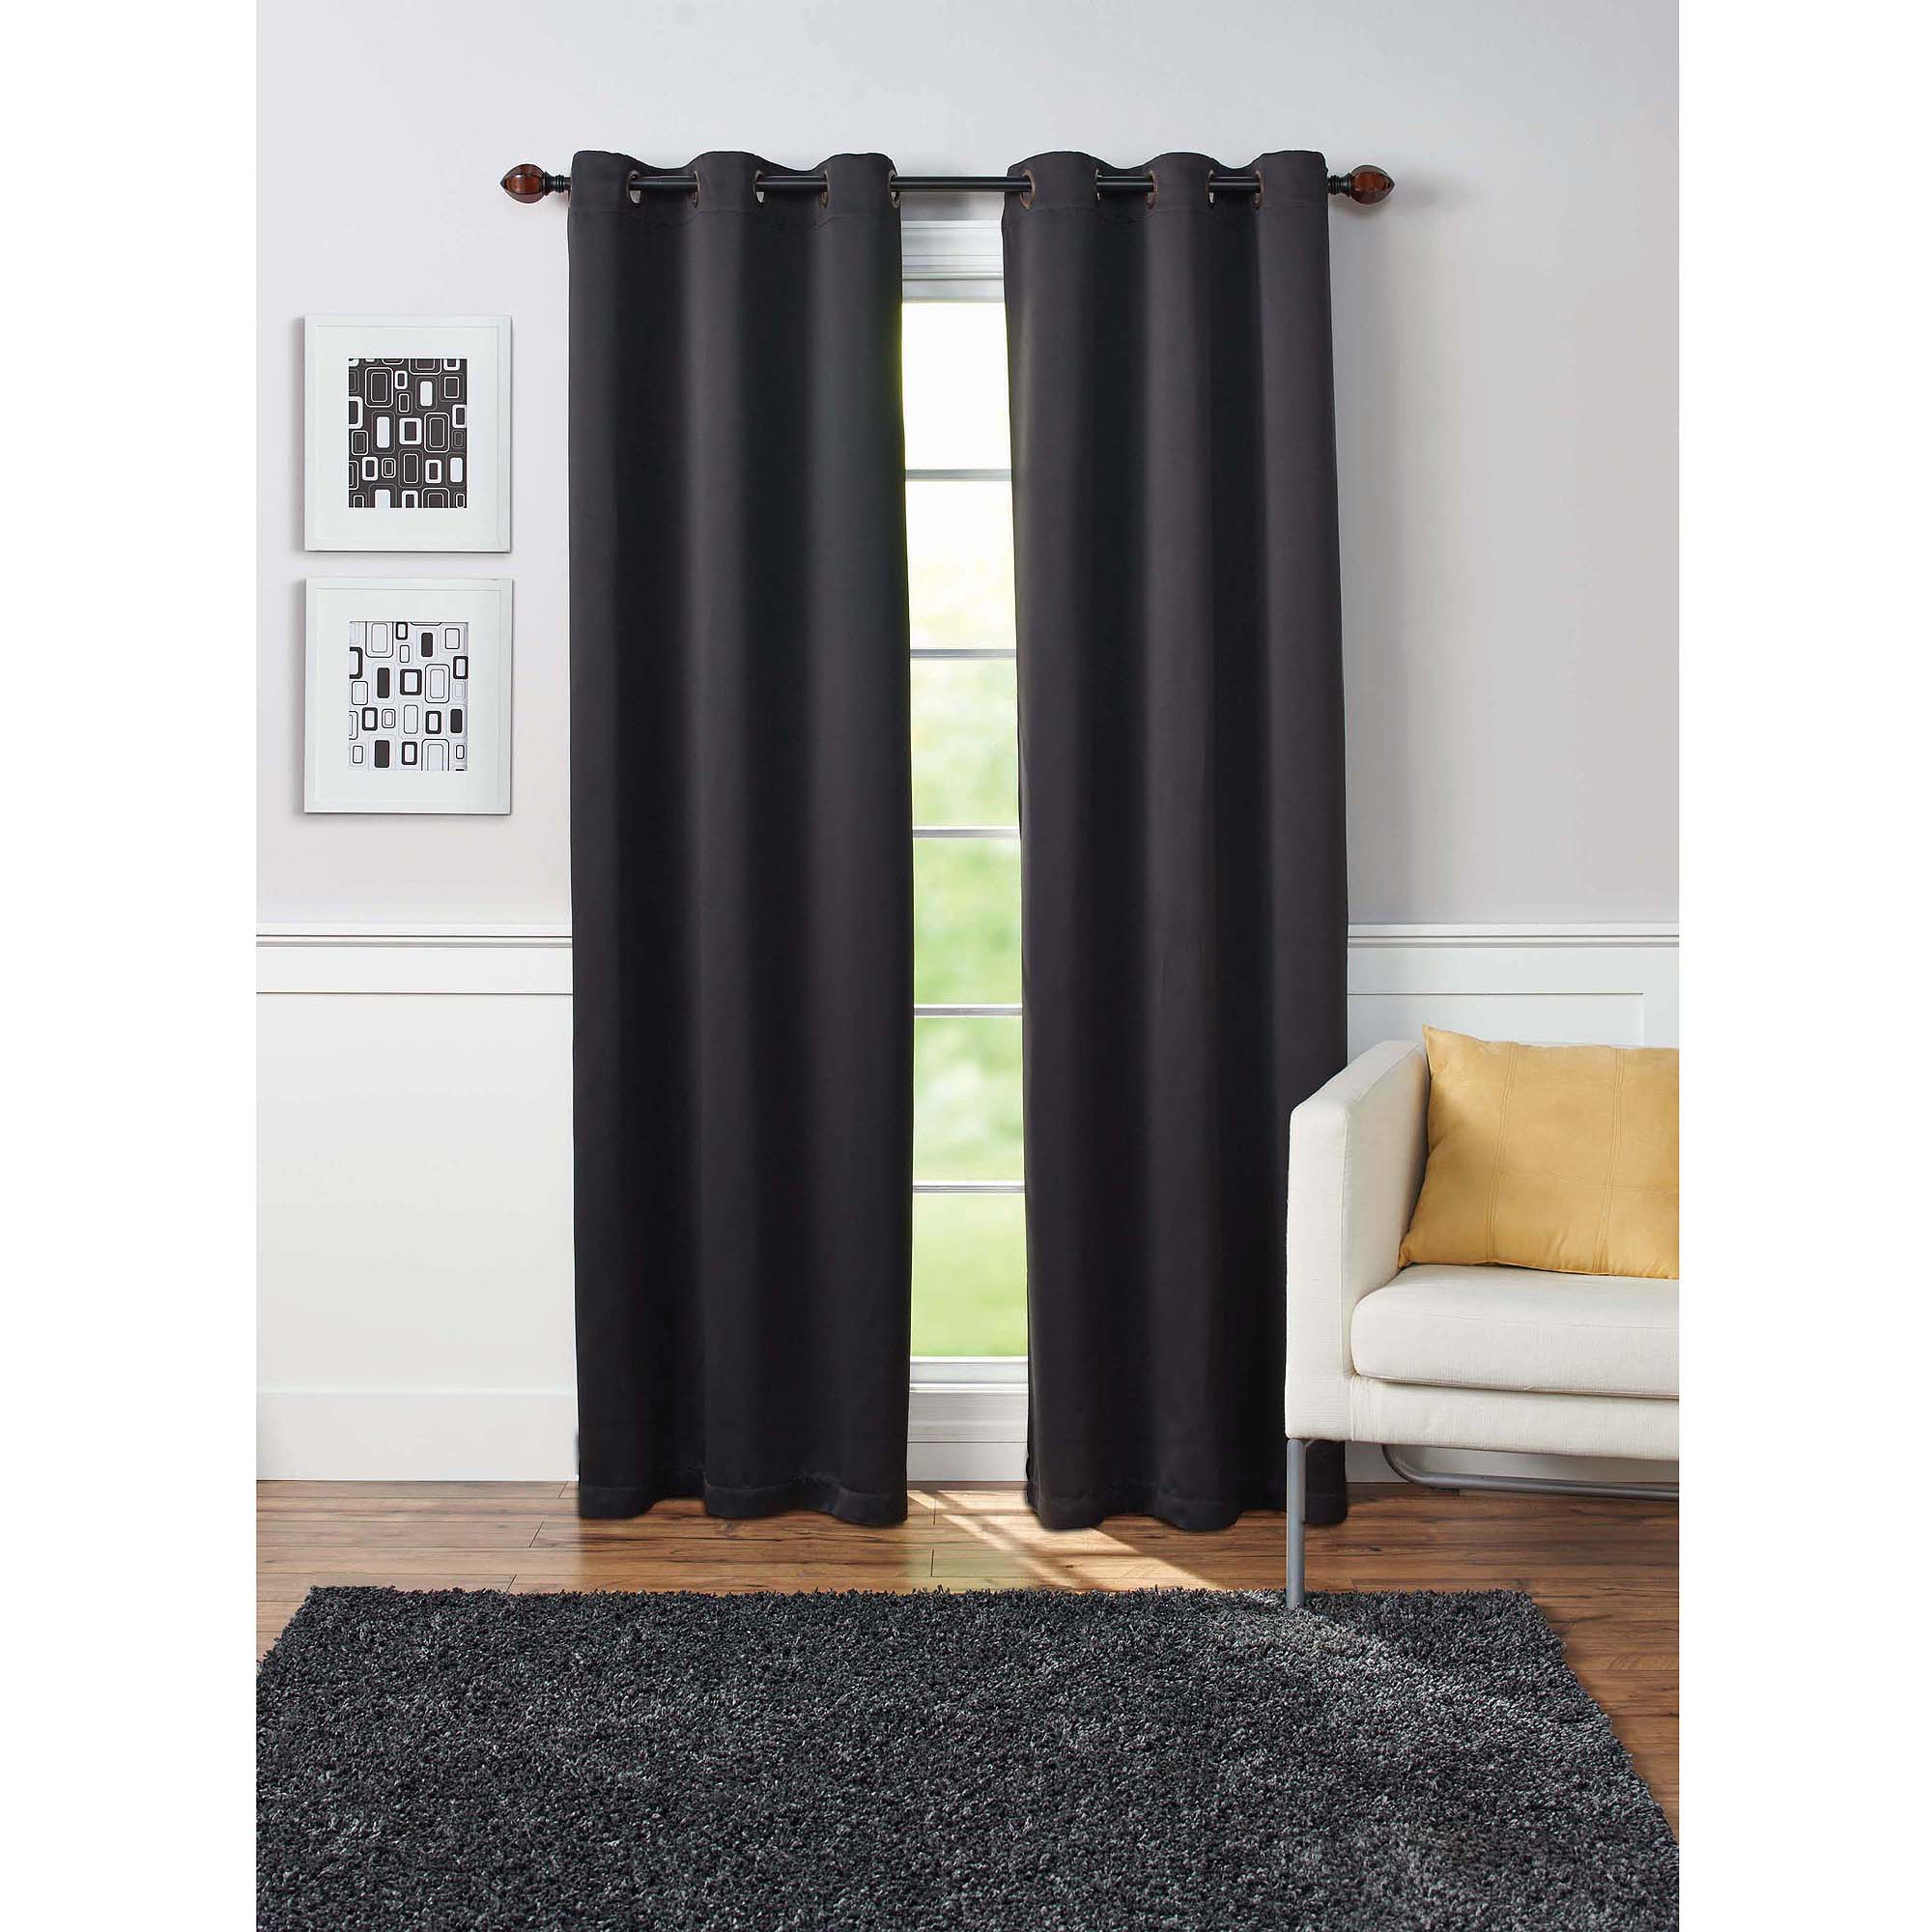 Bon Eclipse Thermal Blackout Tricia Window Curtain Panel Pairs   Walmart.com